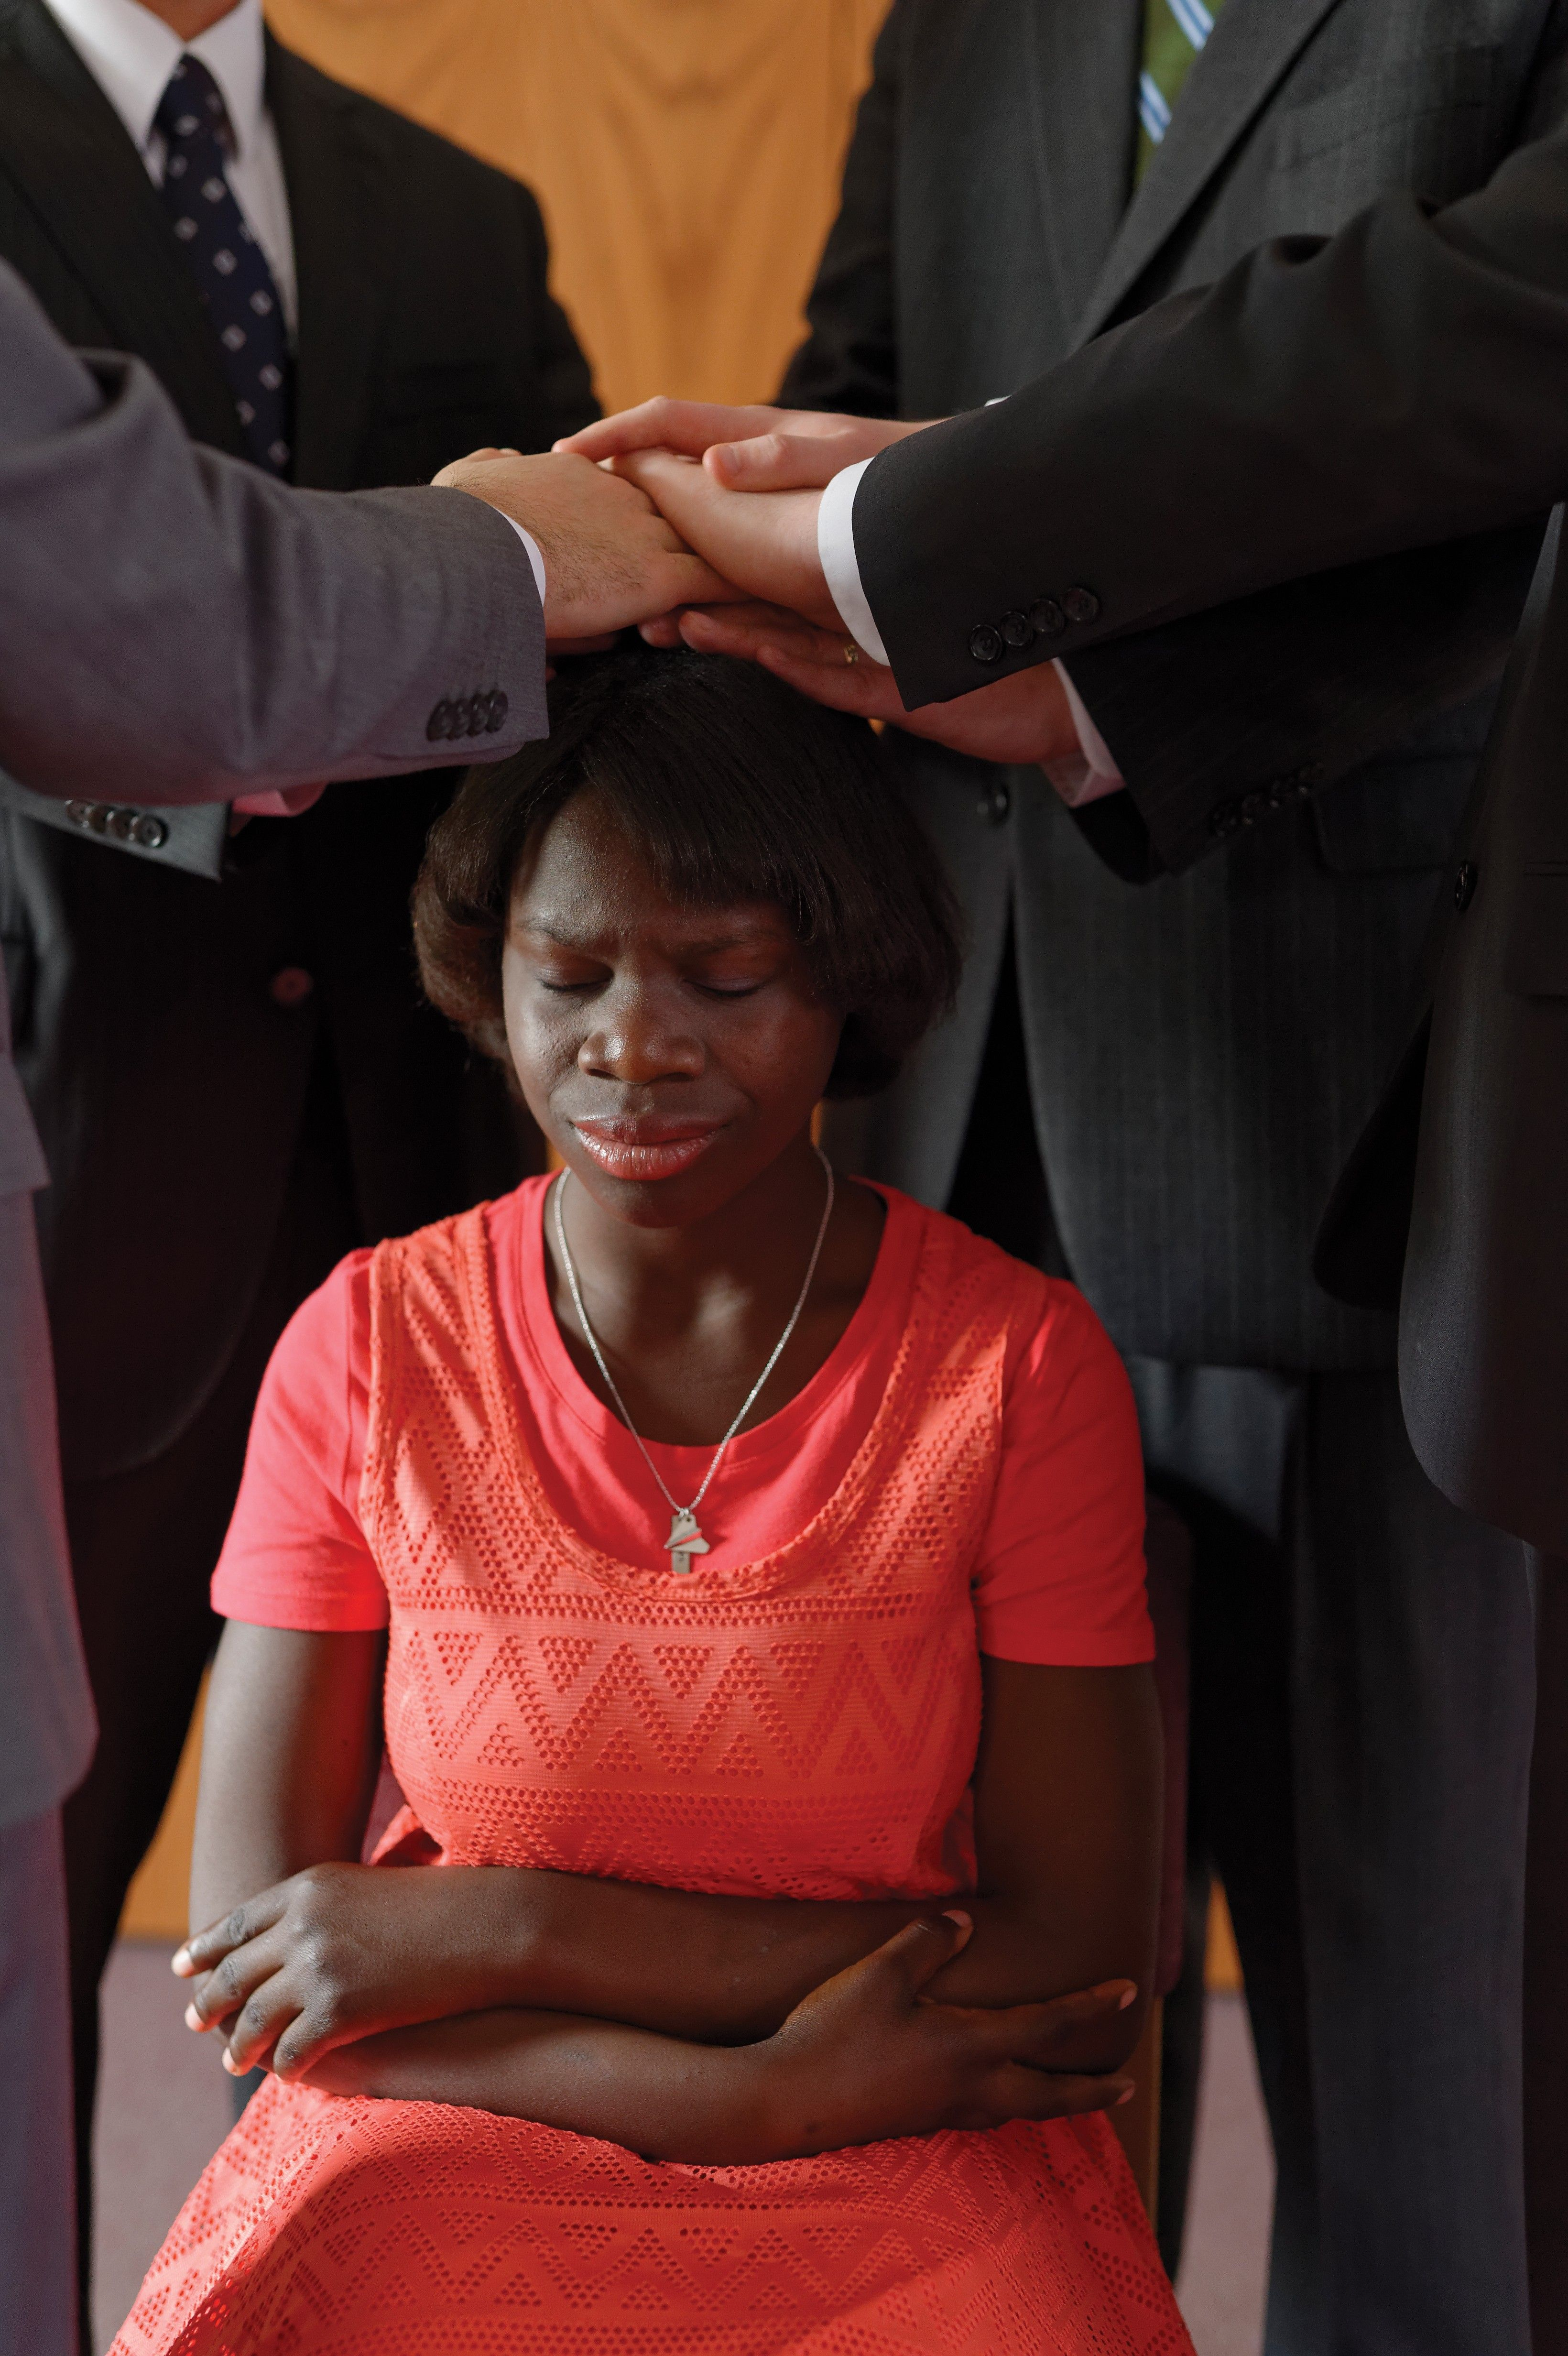 A woman being confirmed and receiving the gift of the Holy Ghost.